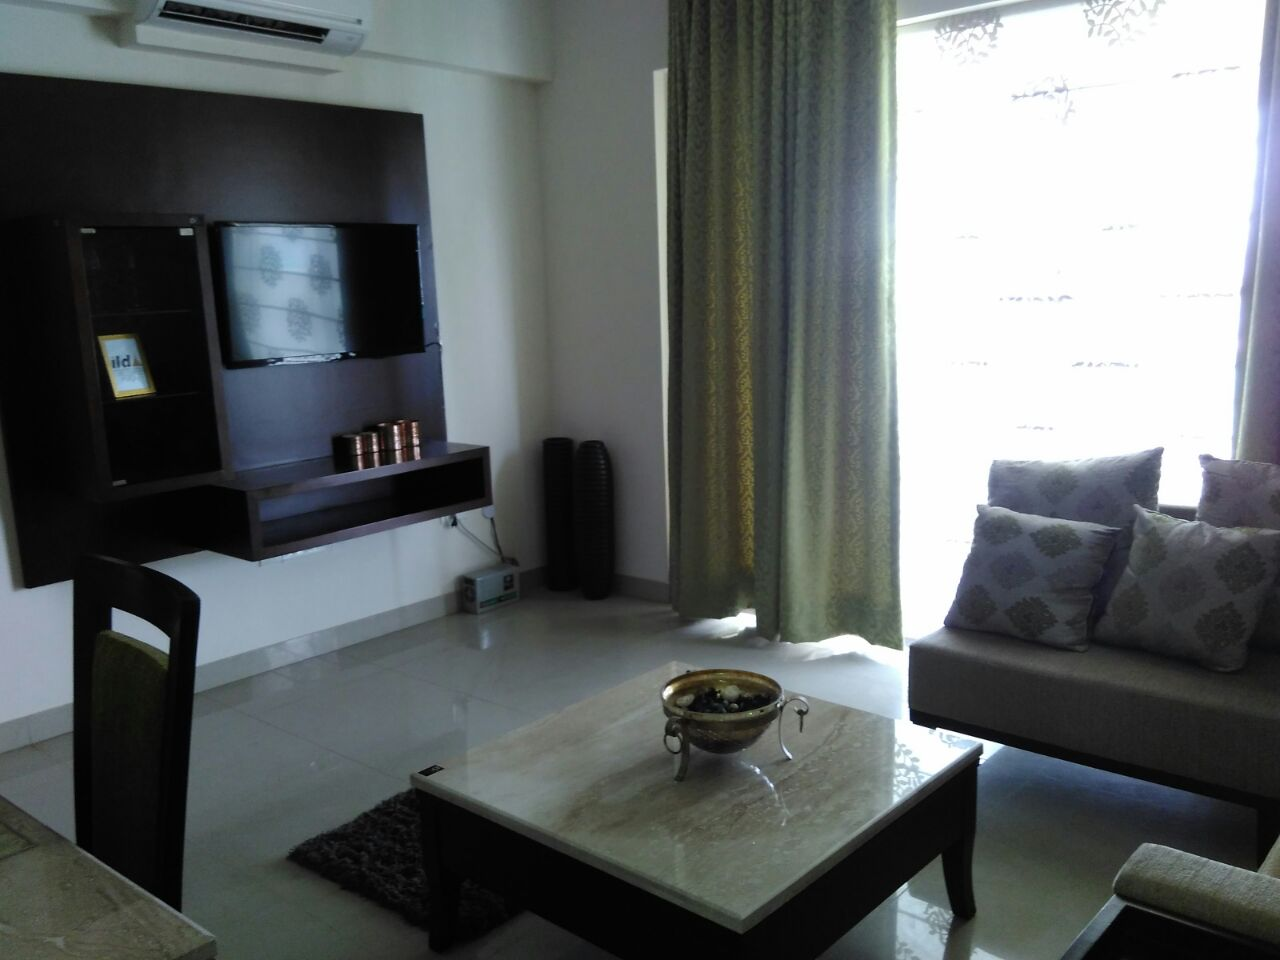 Sample apartment at Arete by ILD, August 2016